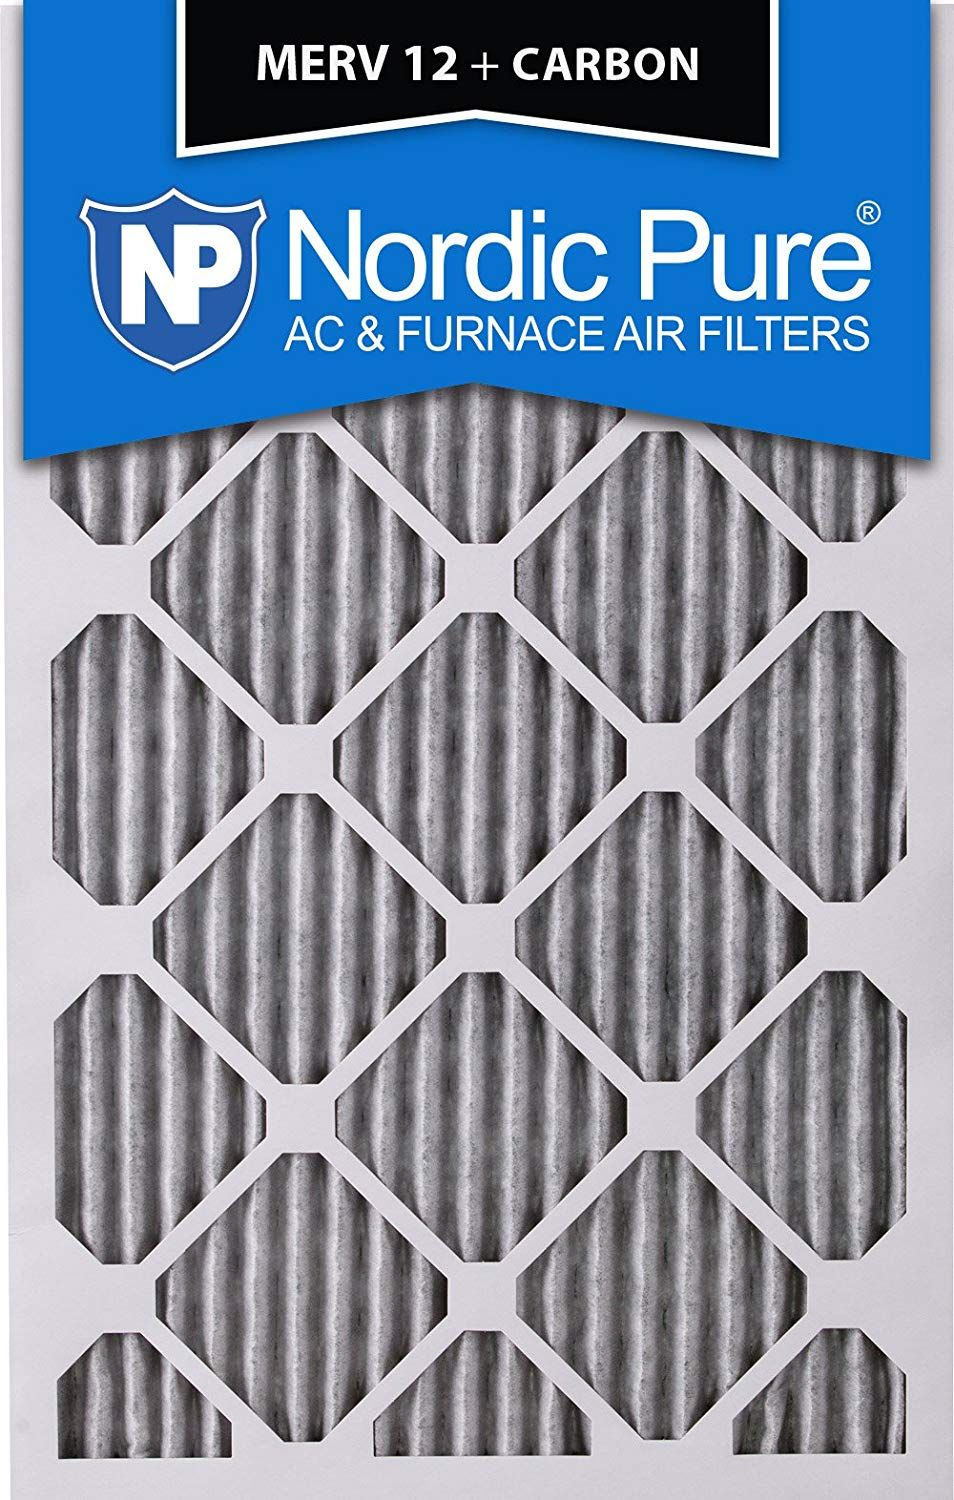 Nordic Pure 20x25x1 Merv 12 Pleated Plus Carbon Ac Furnace Air Filters 20x25x1pm12c 6 Piece Click Image To Review Mo Ac Furnace Furnace Filters Pure Products